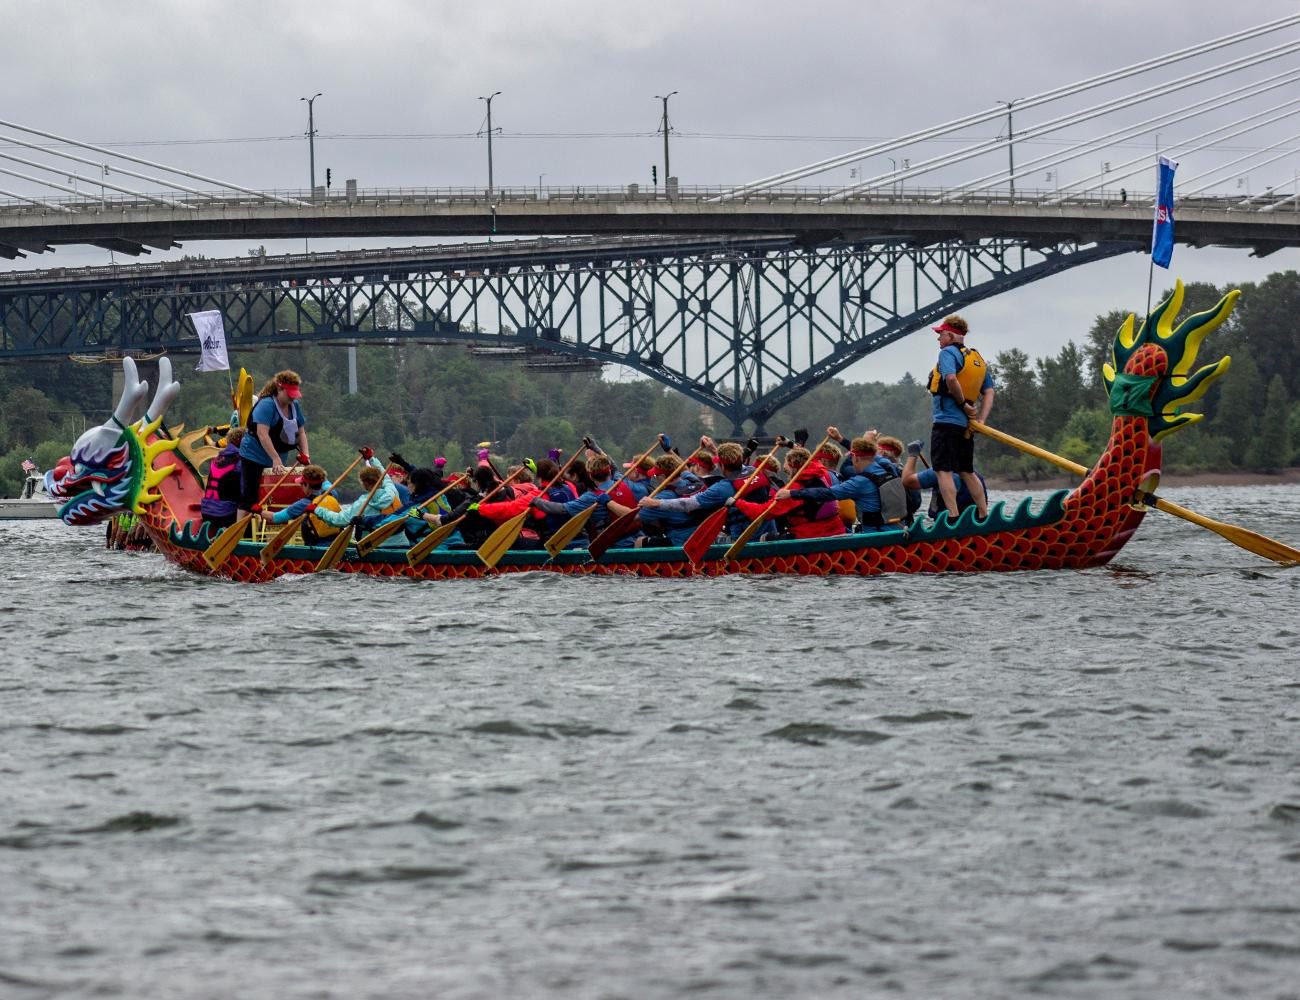 Hundreds of people filled Tom McCall Waterfront Park on Sunday, June 10, 2018 for the Portland Rose Festival Dragon Boat Races. The annual cultural event is hosted by the Portland-Kaohsiung Sister City Association. It features dozens of dragon boat teams from around the world who race in Taiwan-style dragon boats down the Willamette River. Photo by Amanda Butt